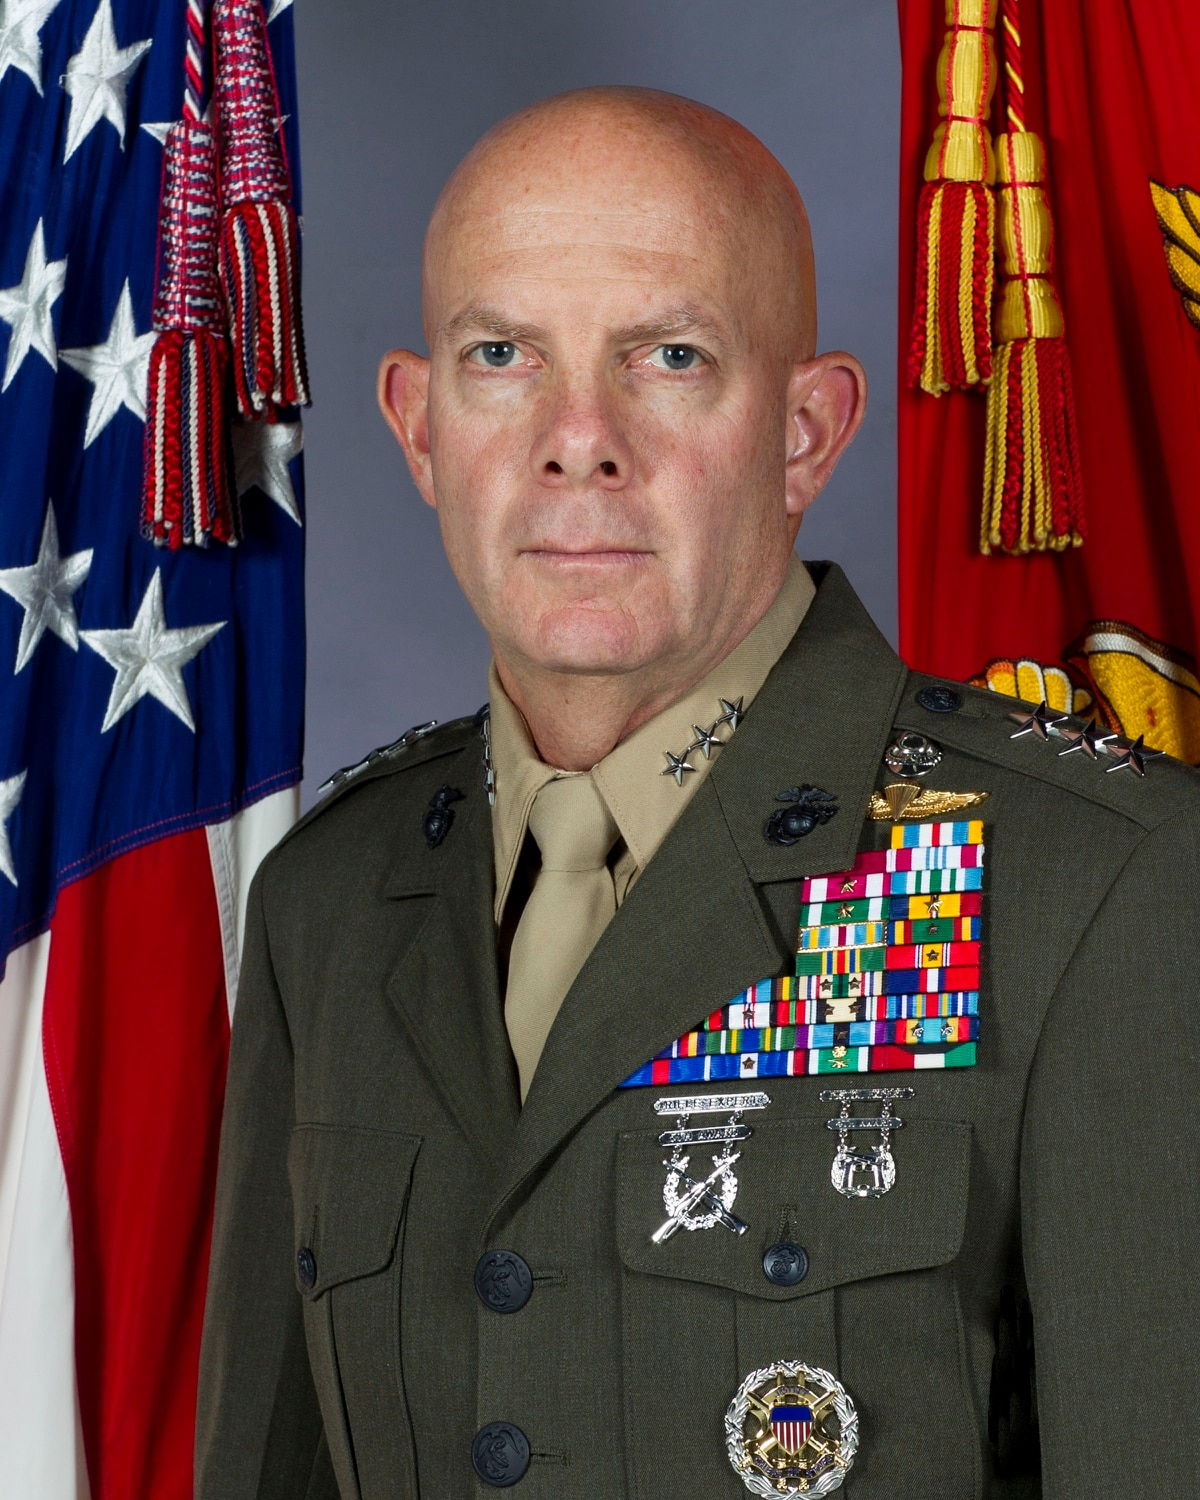 3 Star Nominated To Lead All Pacific Based Marines